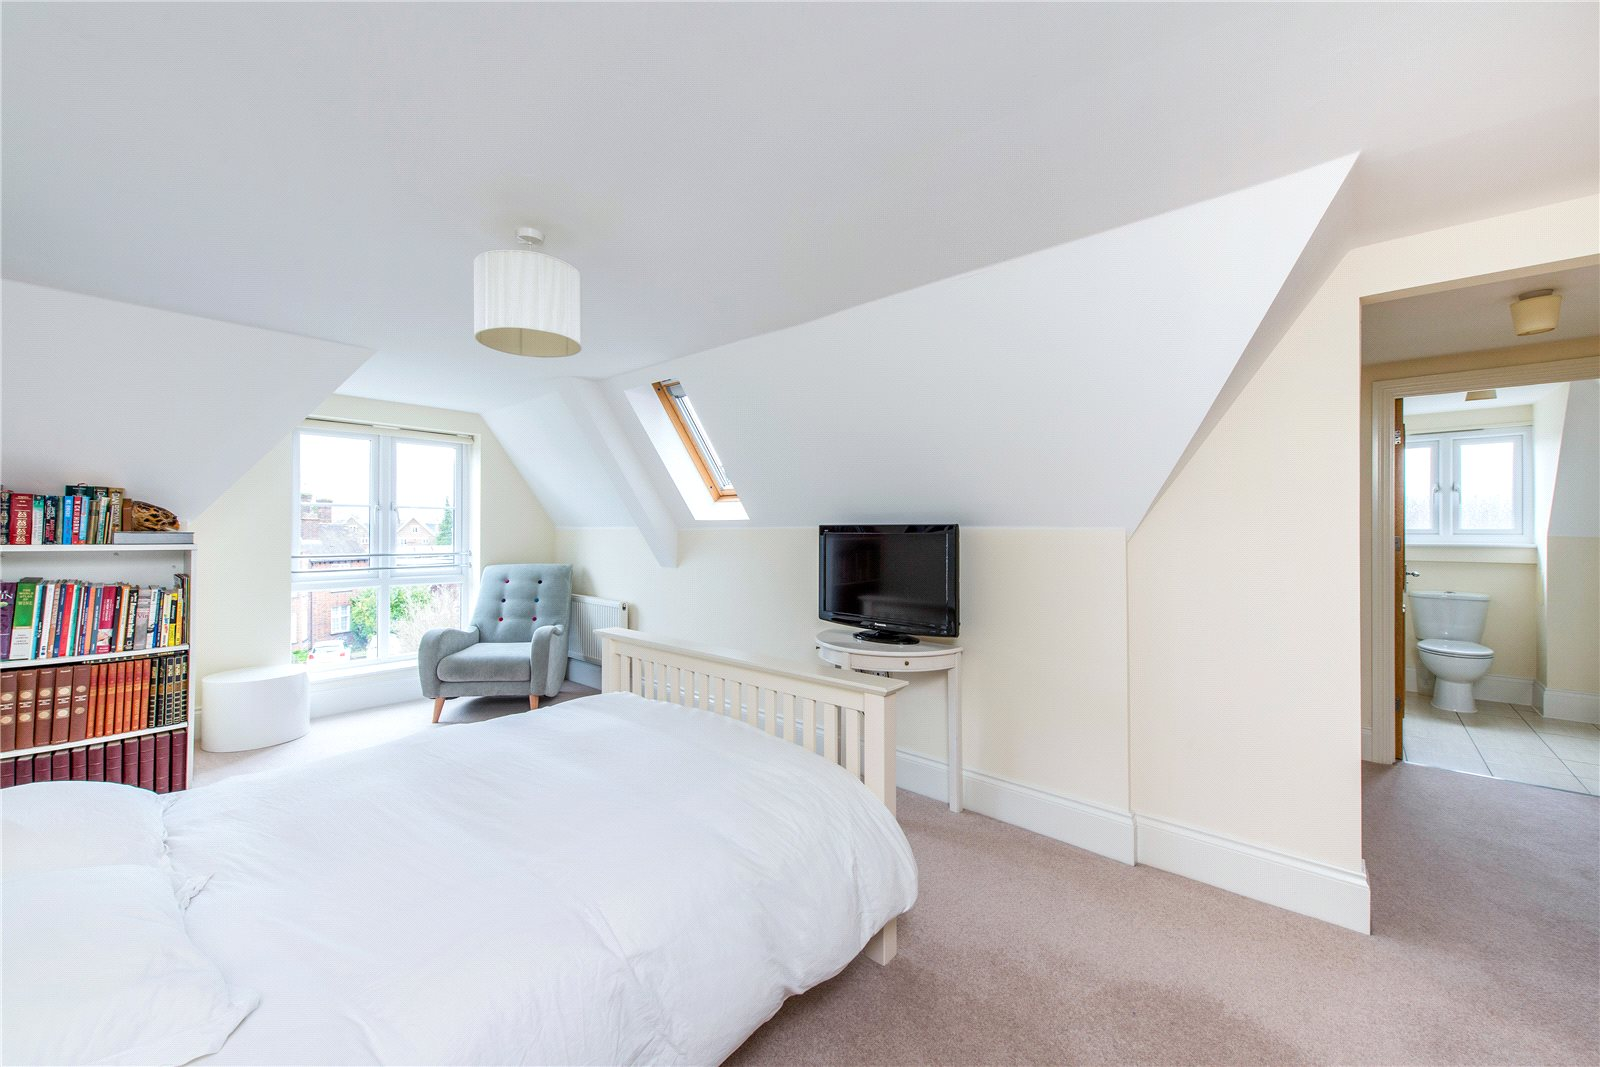 Additional photo for property listing at Ethorpe Crescent, Gerrards Cross, Buckinghamshire, SL9 Gerrards Cross, イギリス